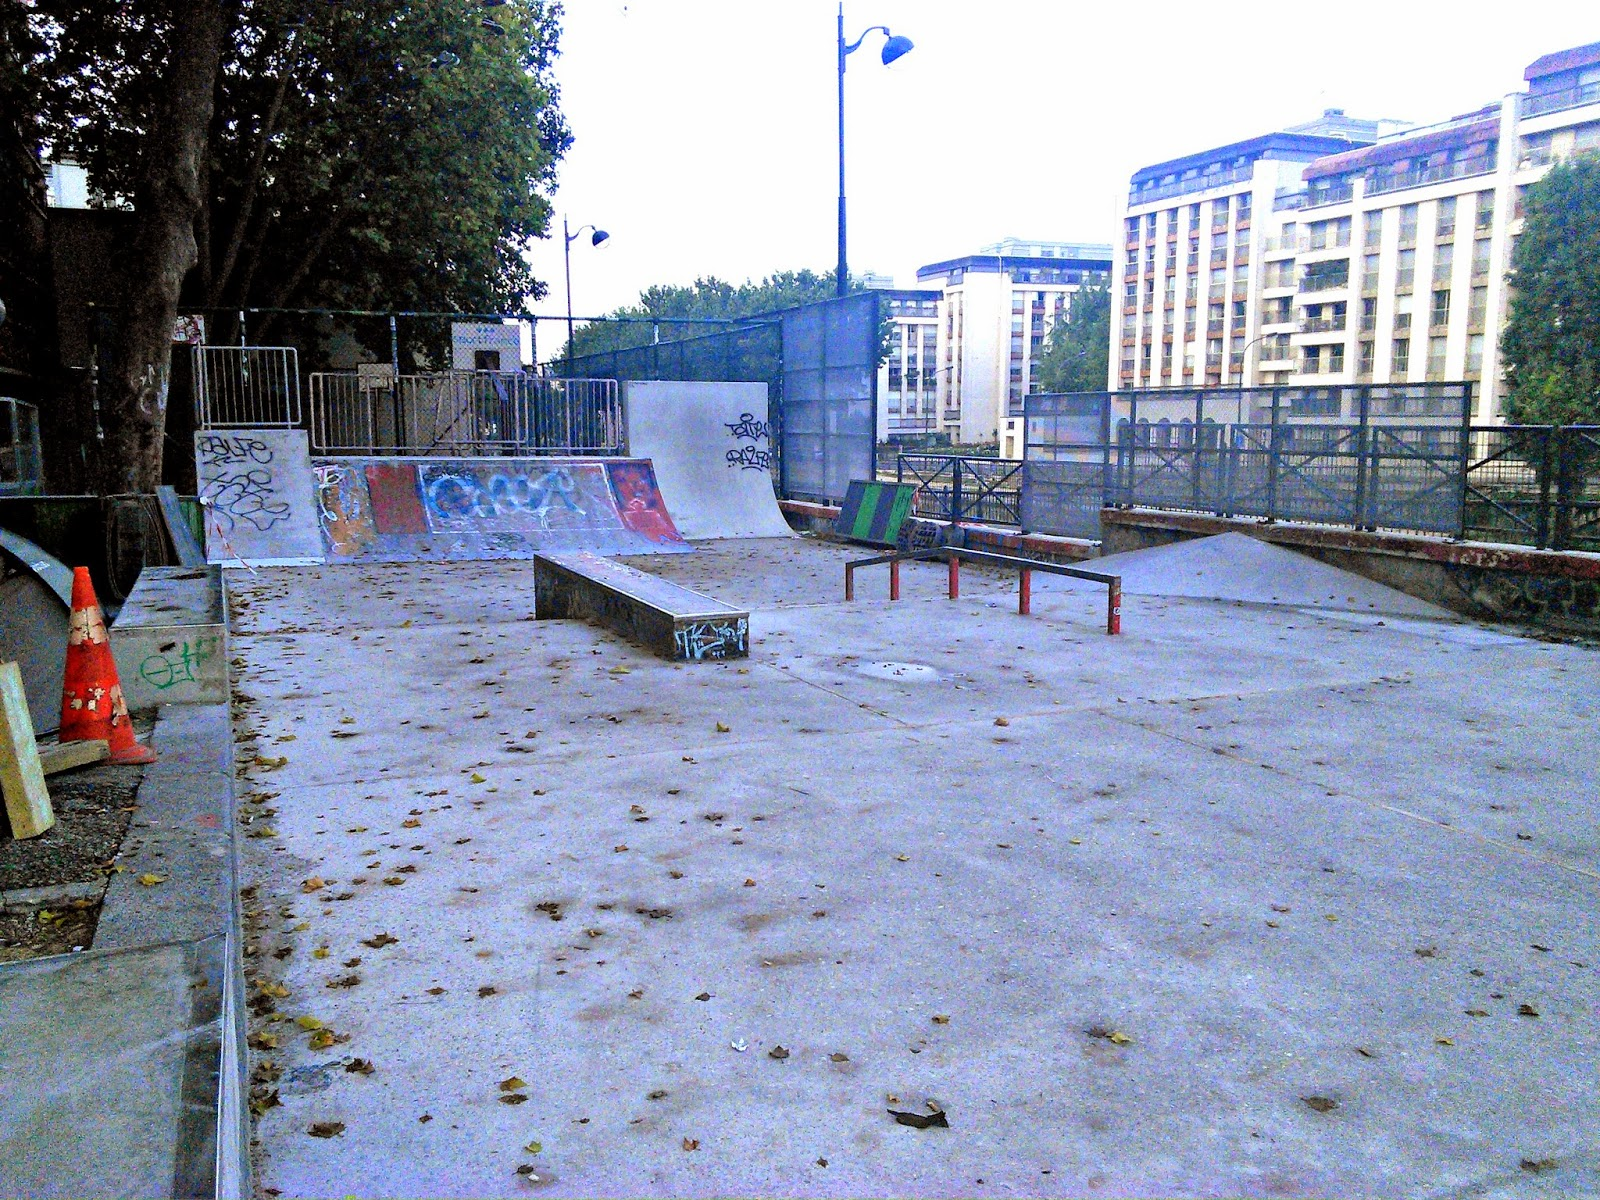 Jemmapes travaux skatepark